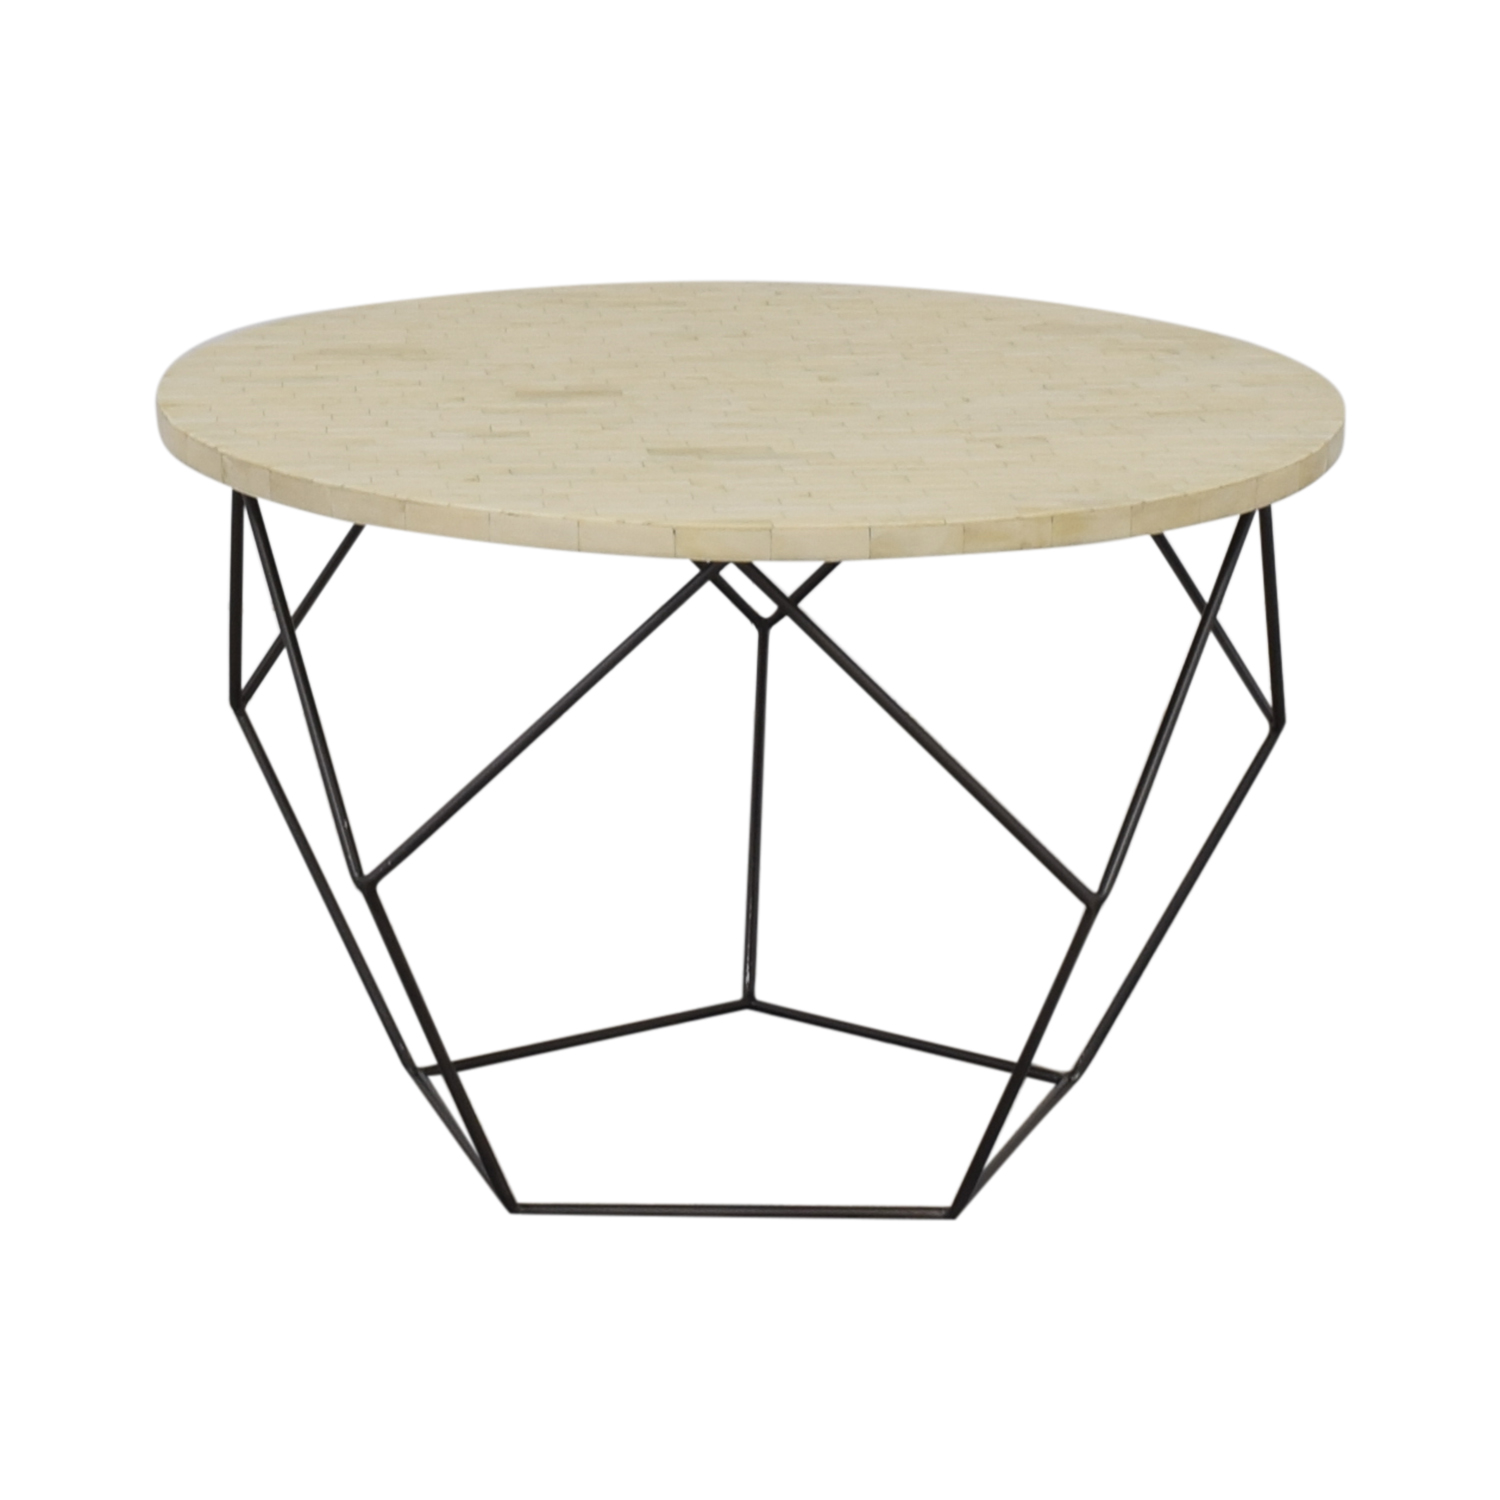 West Elm West Elm Origami Coffee Table on sale